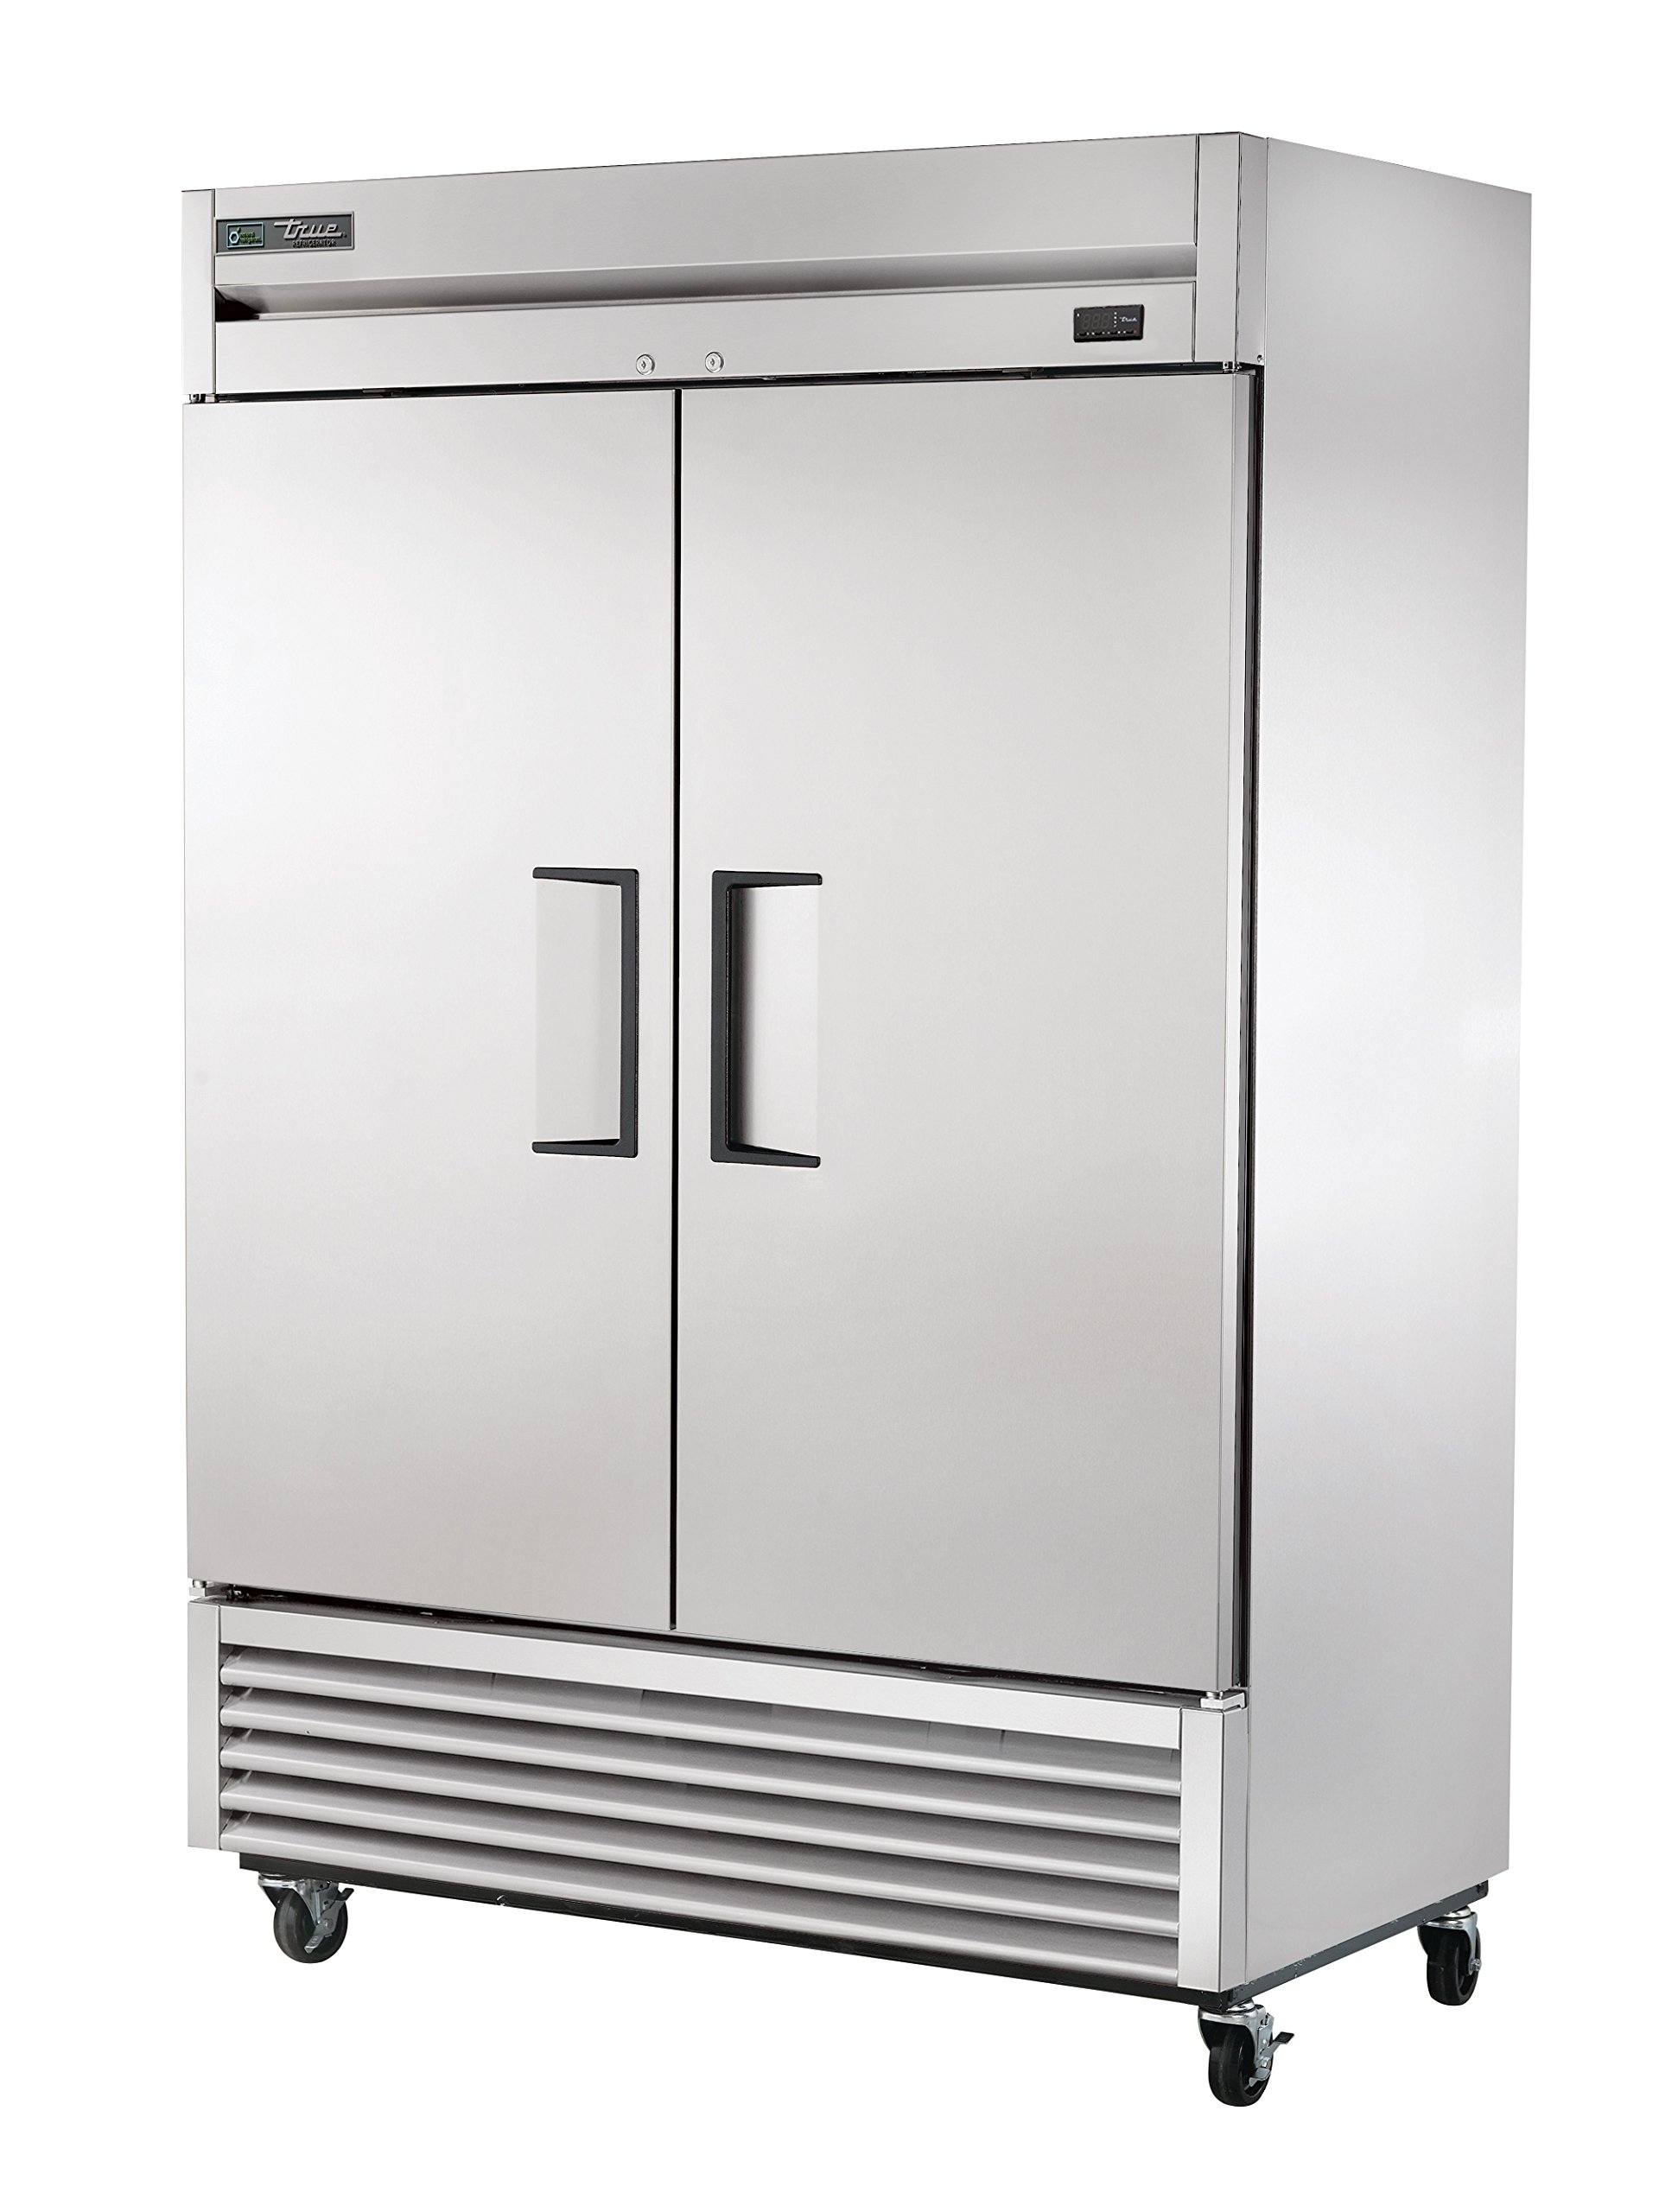 True T-49-HC Reach-in Solid Swing Door Refrigerator with Hydrocarbon Refrigerant, Holds 33 Degree F to 38 Degree F, 78.625'' Height, 29.875'' Width, 54.125'' Length by True Decor